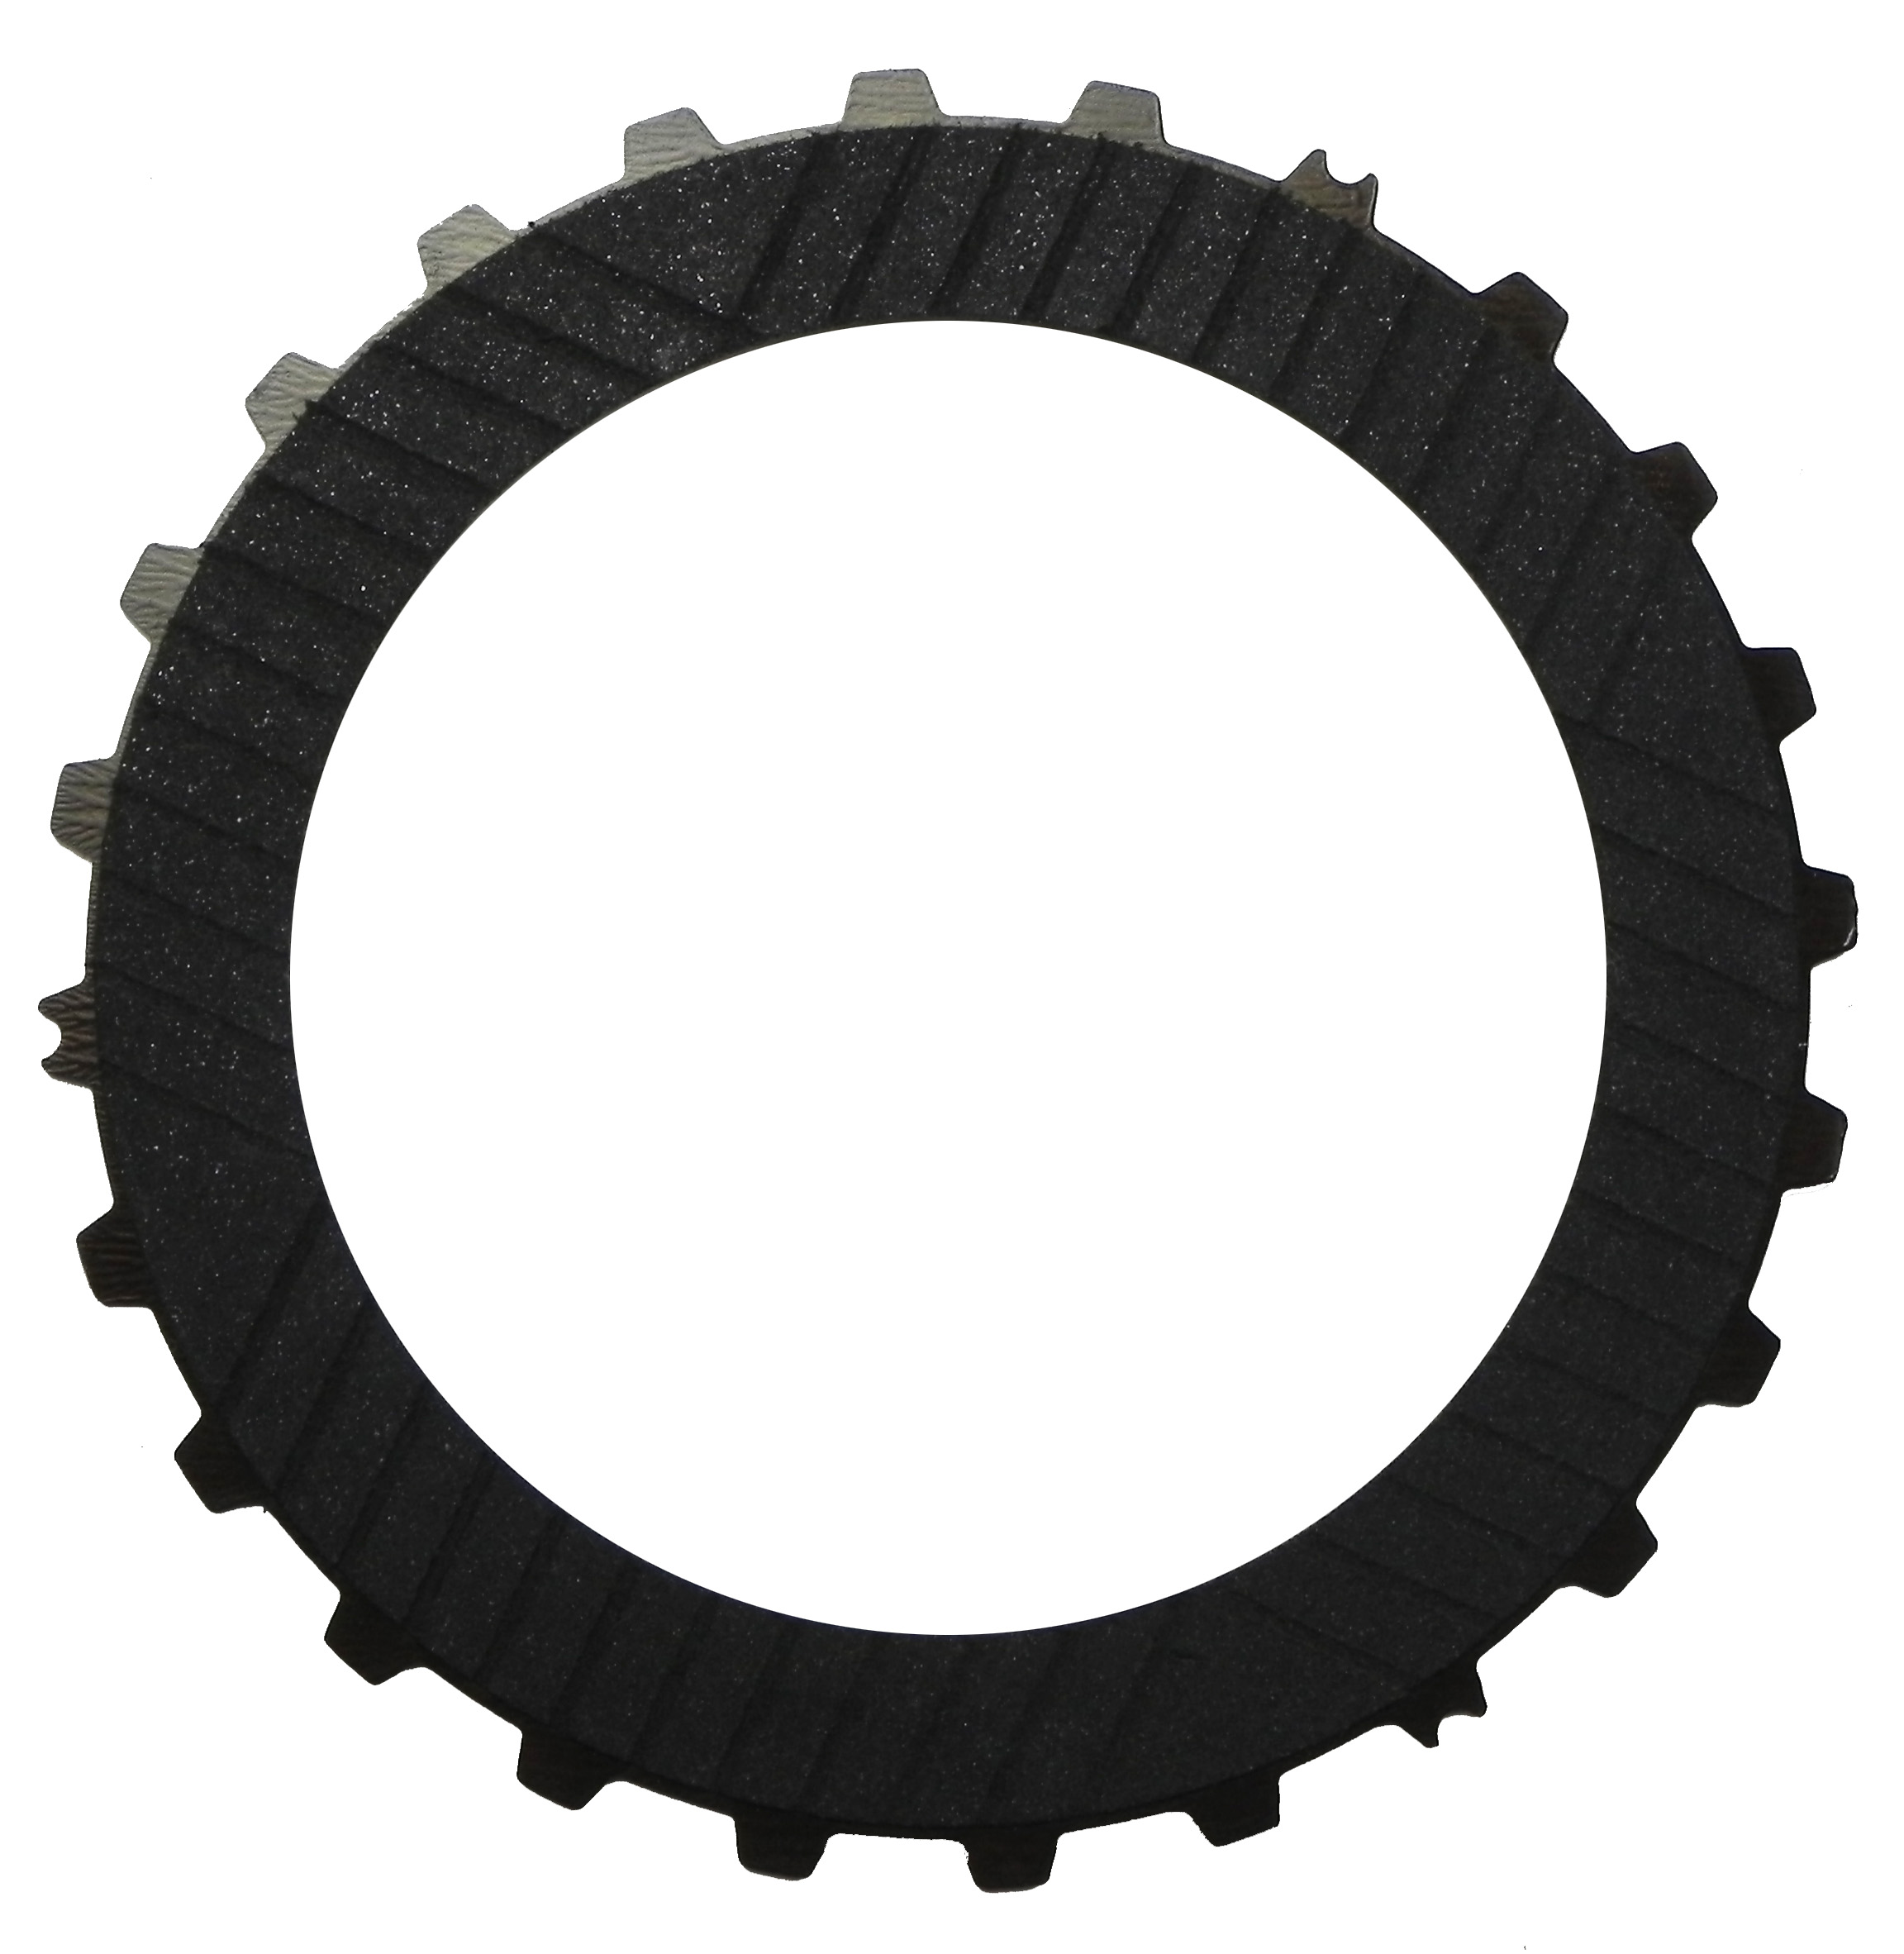 R572635 | 1997-2006 Friction Clutch Plate High Energy K3 Clutch Single Sided, OD Spline High Energy